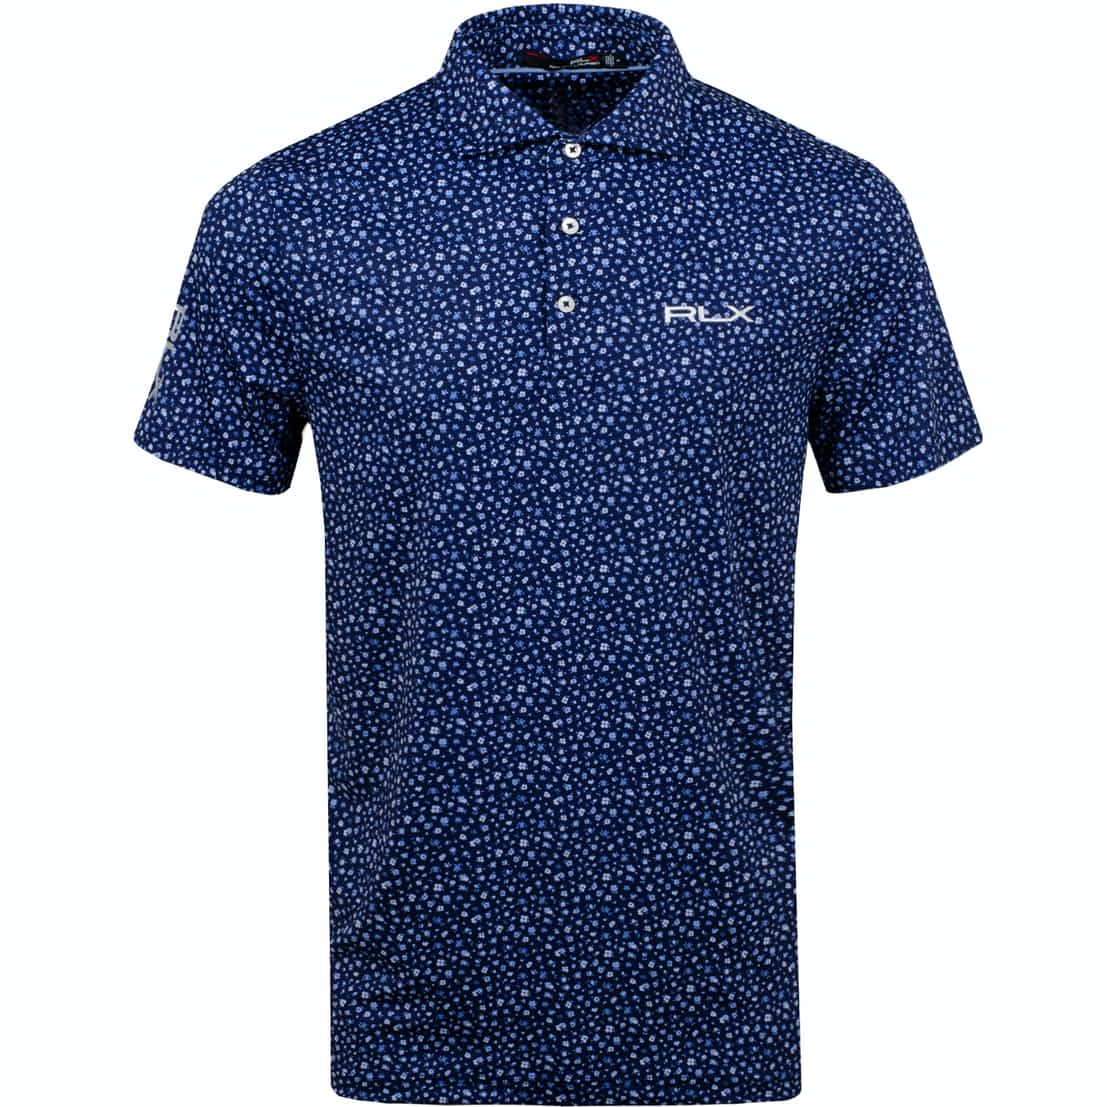 Print Airflow Jersey Navy Monterey Floral - SS20